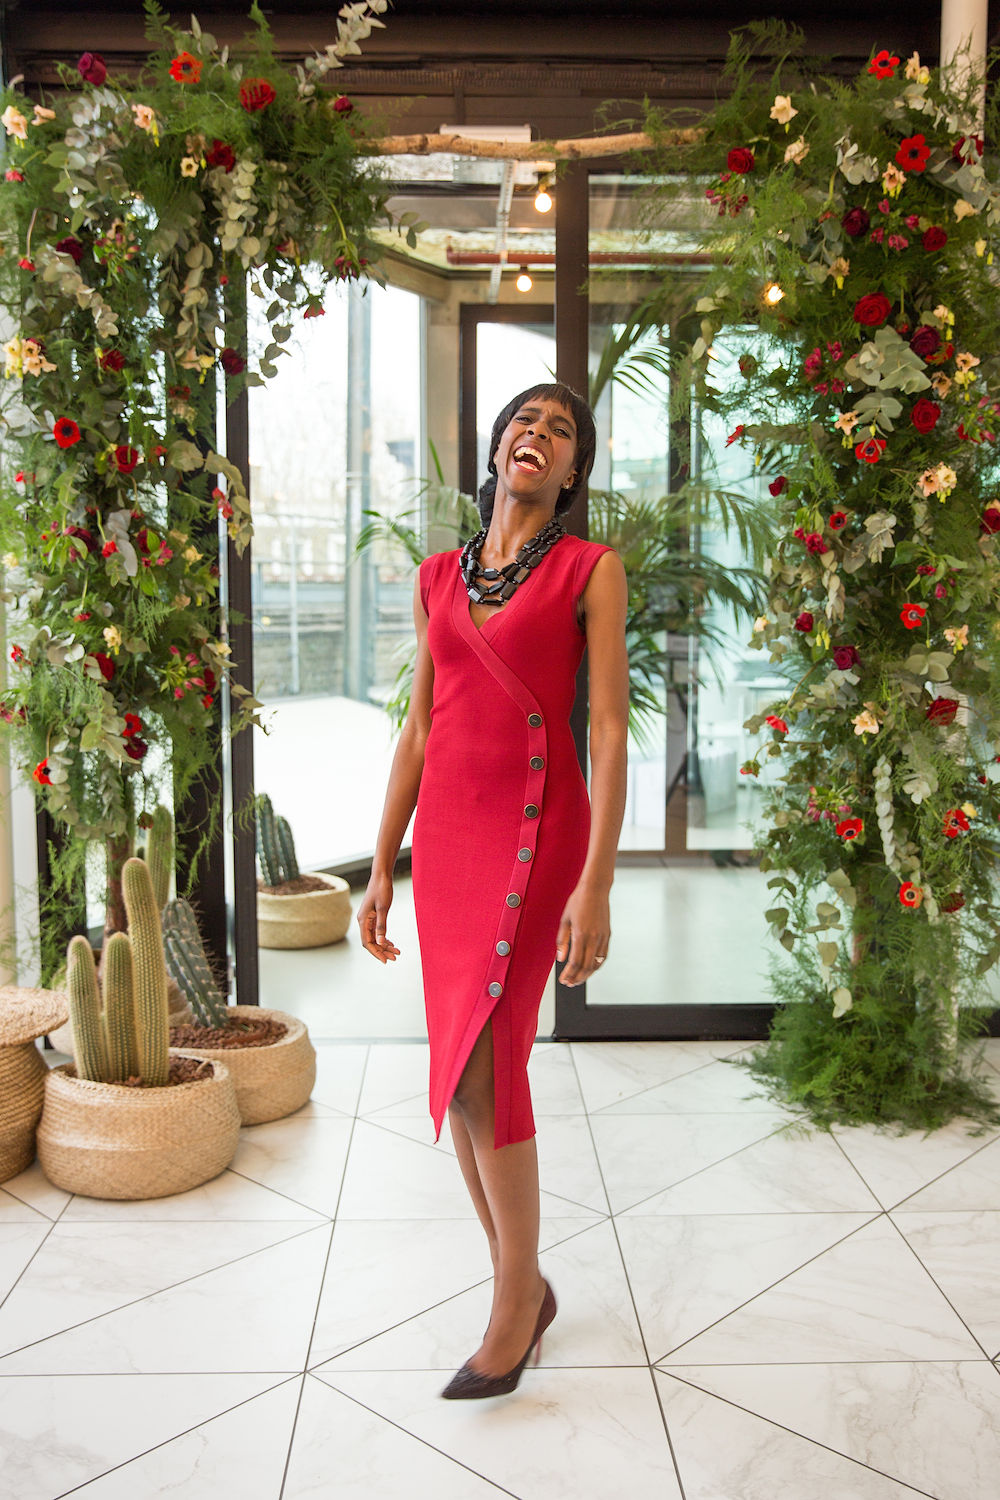 A black woman in a red dress laughing happily before large floral decorations in London UK